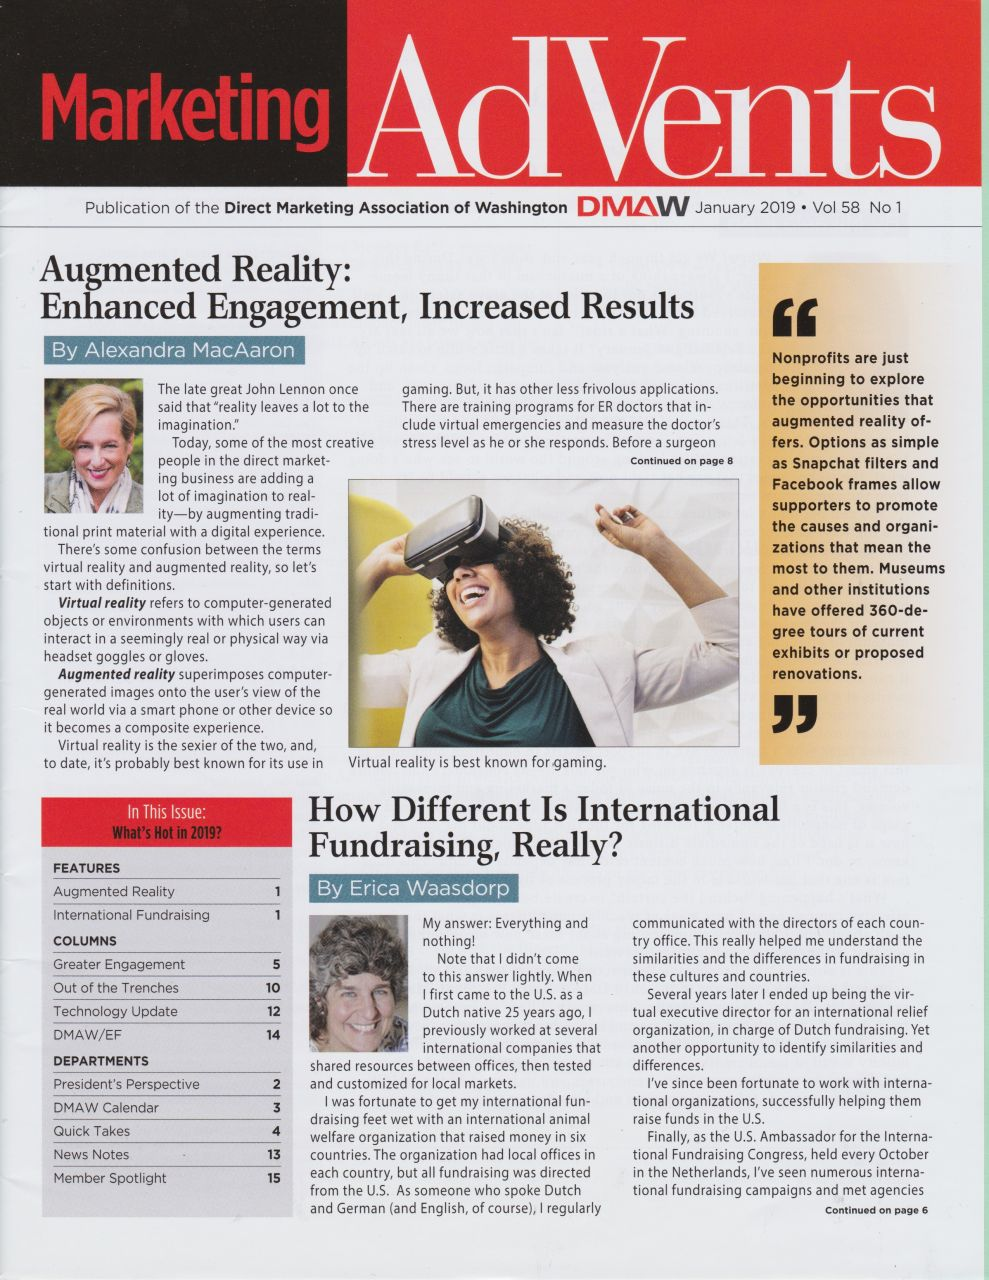 Augmented Reality: Enhanced Engagement, Increased Results